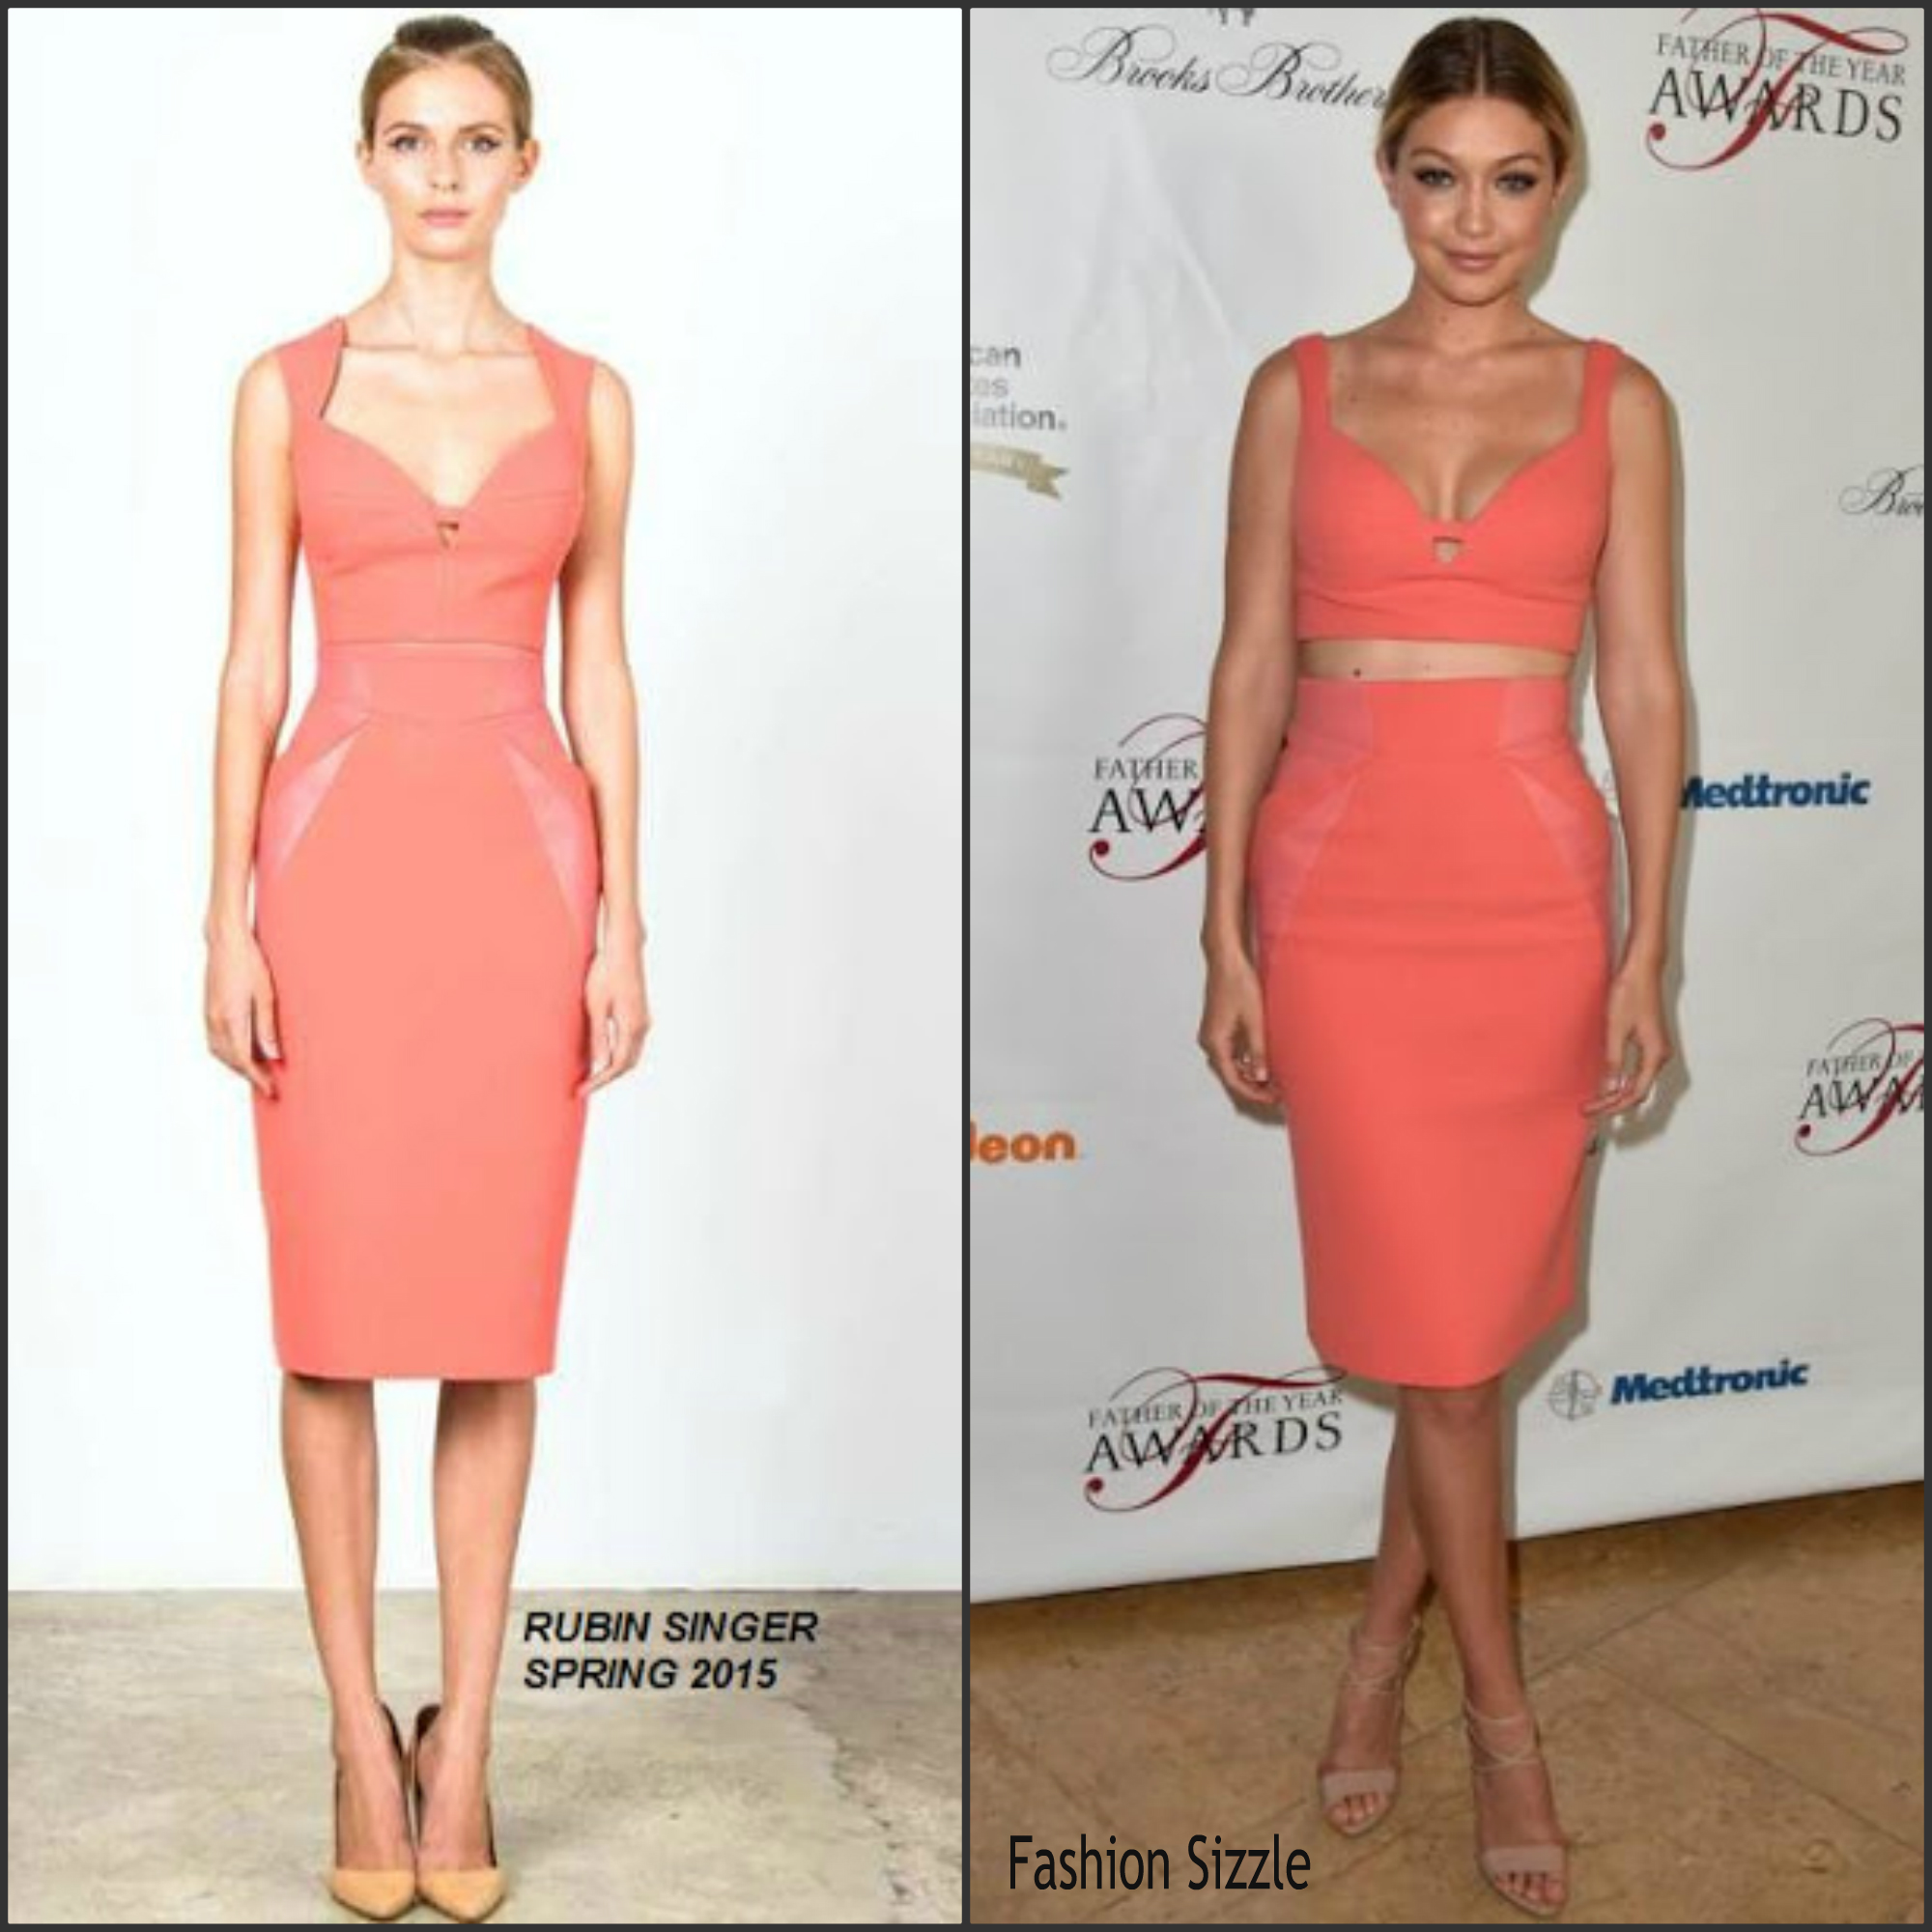 gigi-hadid-in-rubin-singer-at-the-american-diabetes-associations-father-of-the-year-awards